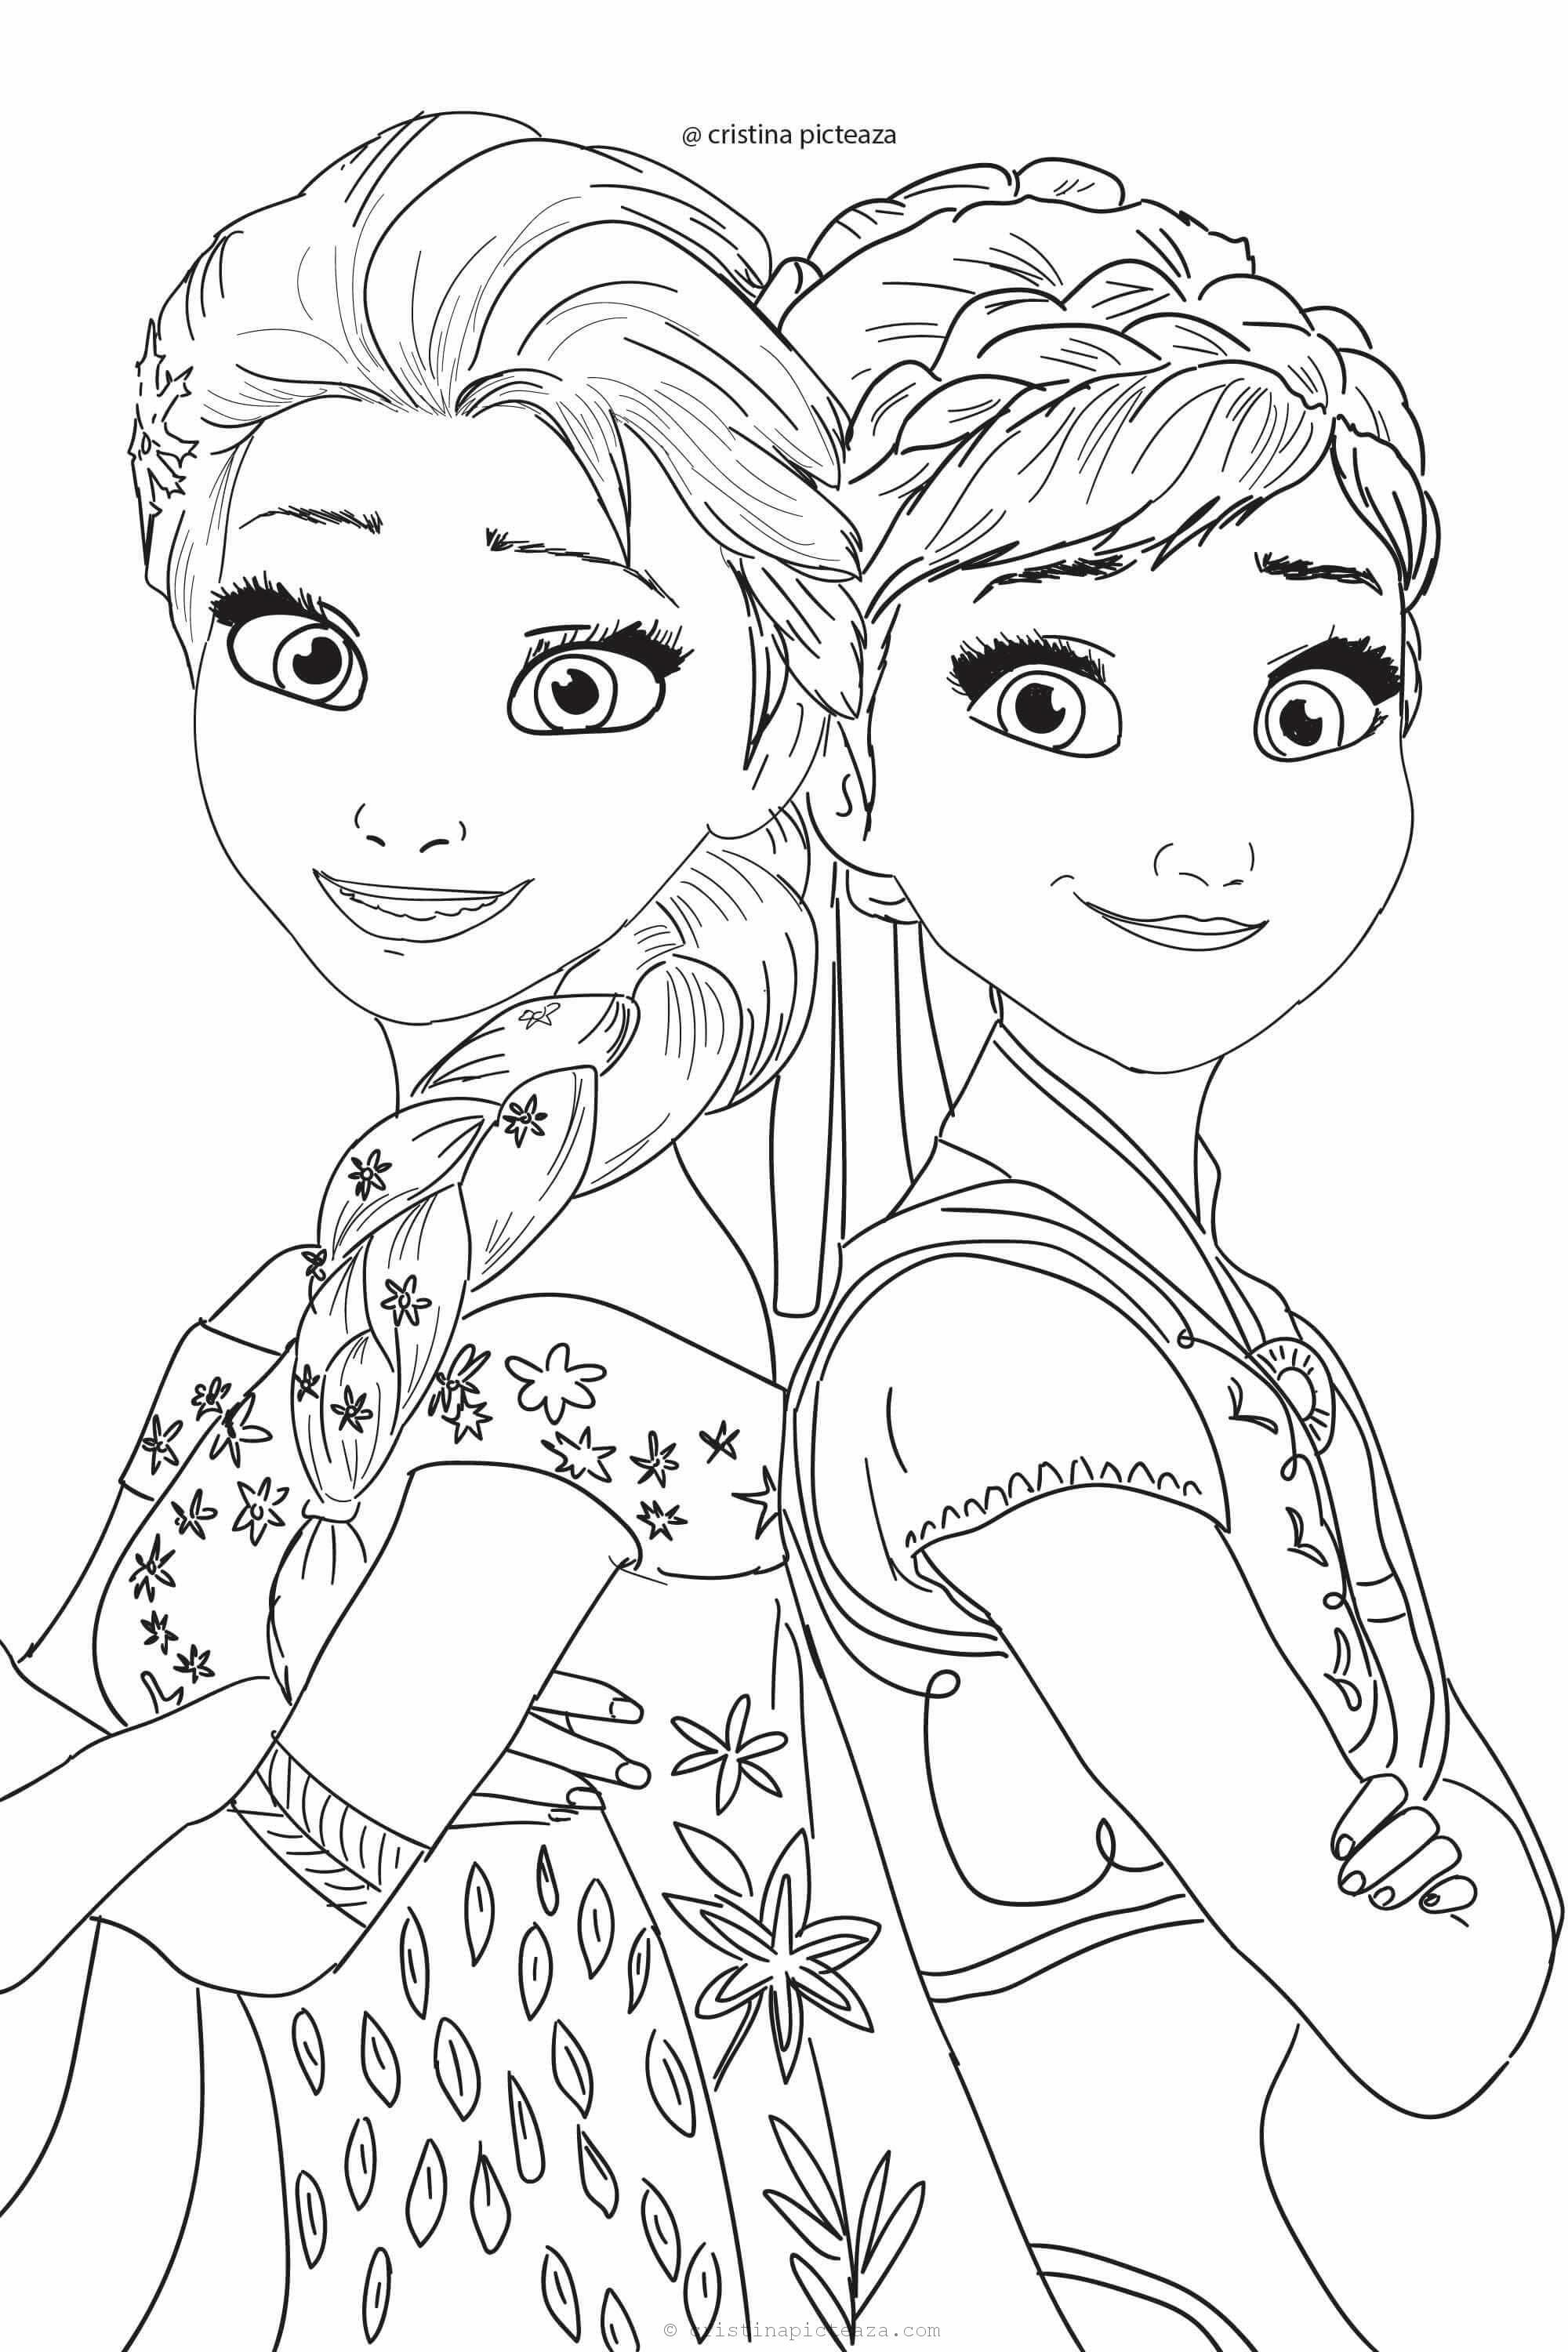 elsa and anna pictures to color elsa and anna coloring pages the sun flower pages elsa to color anna and pictures